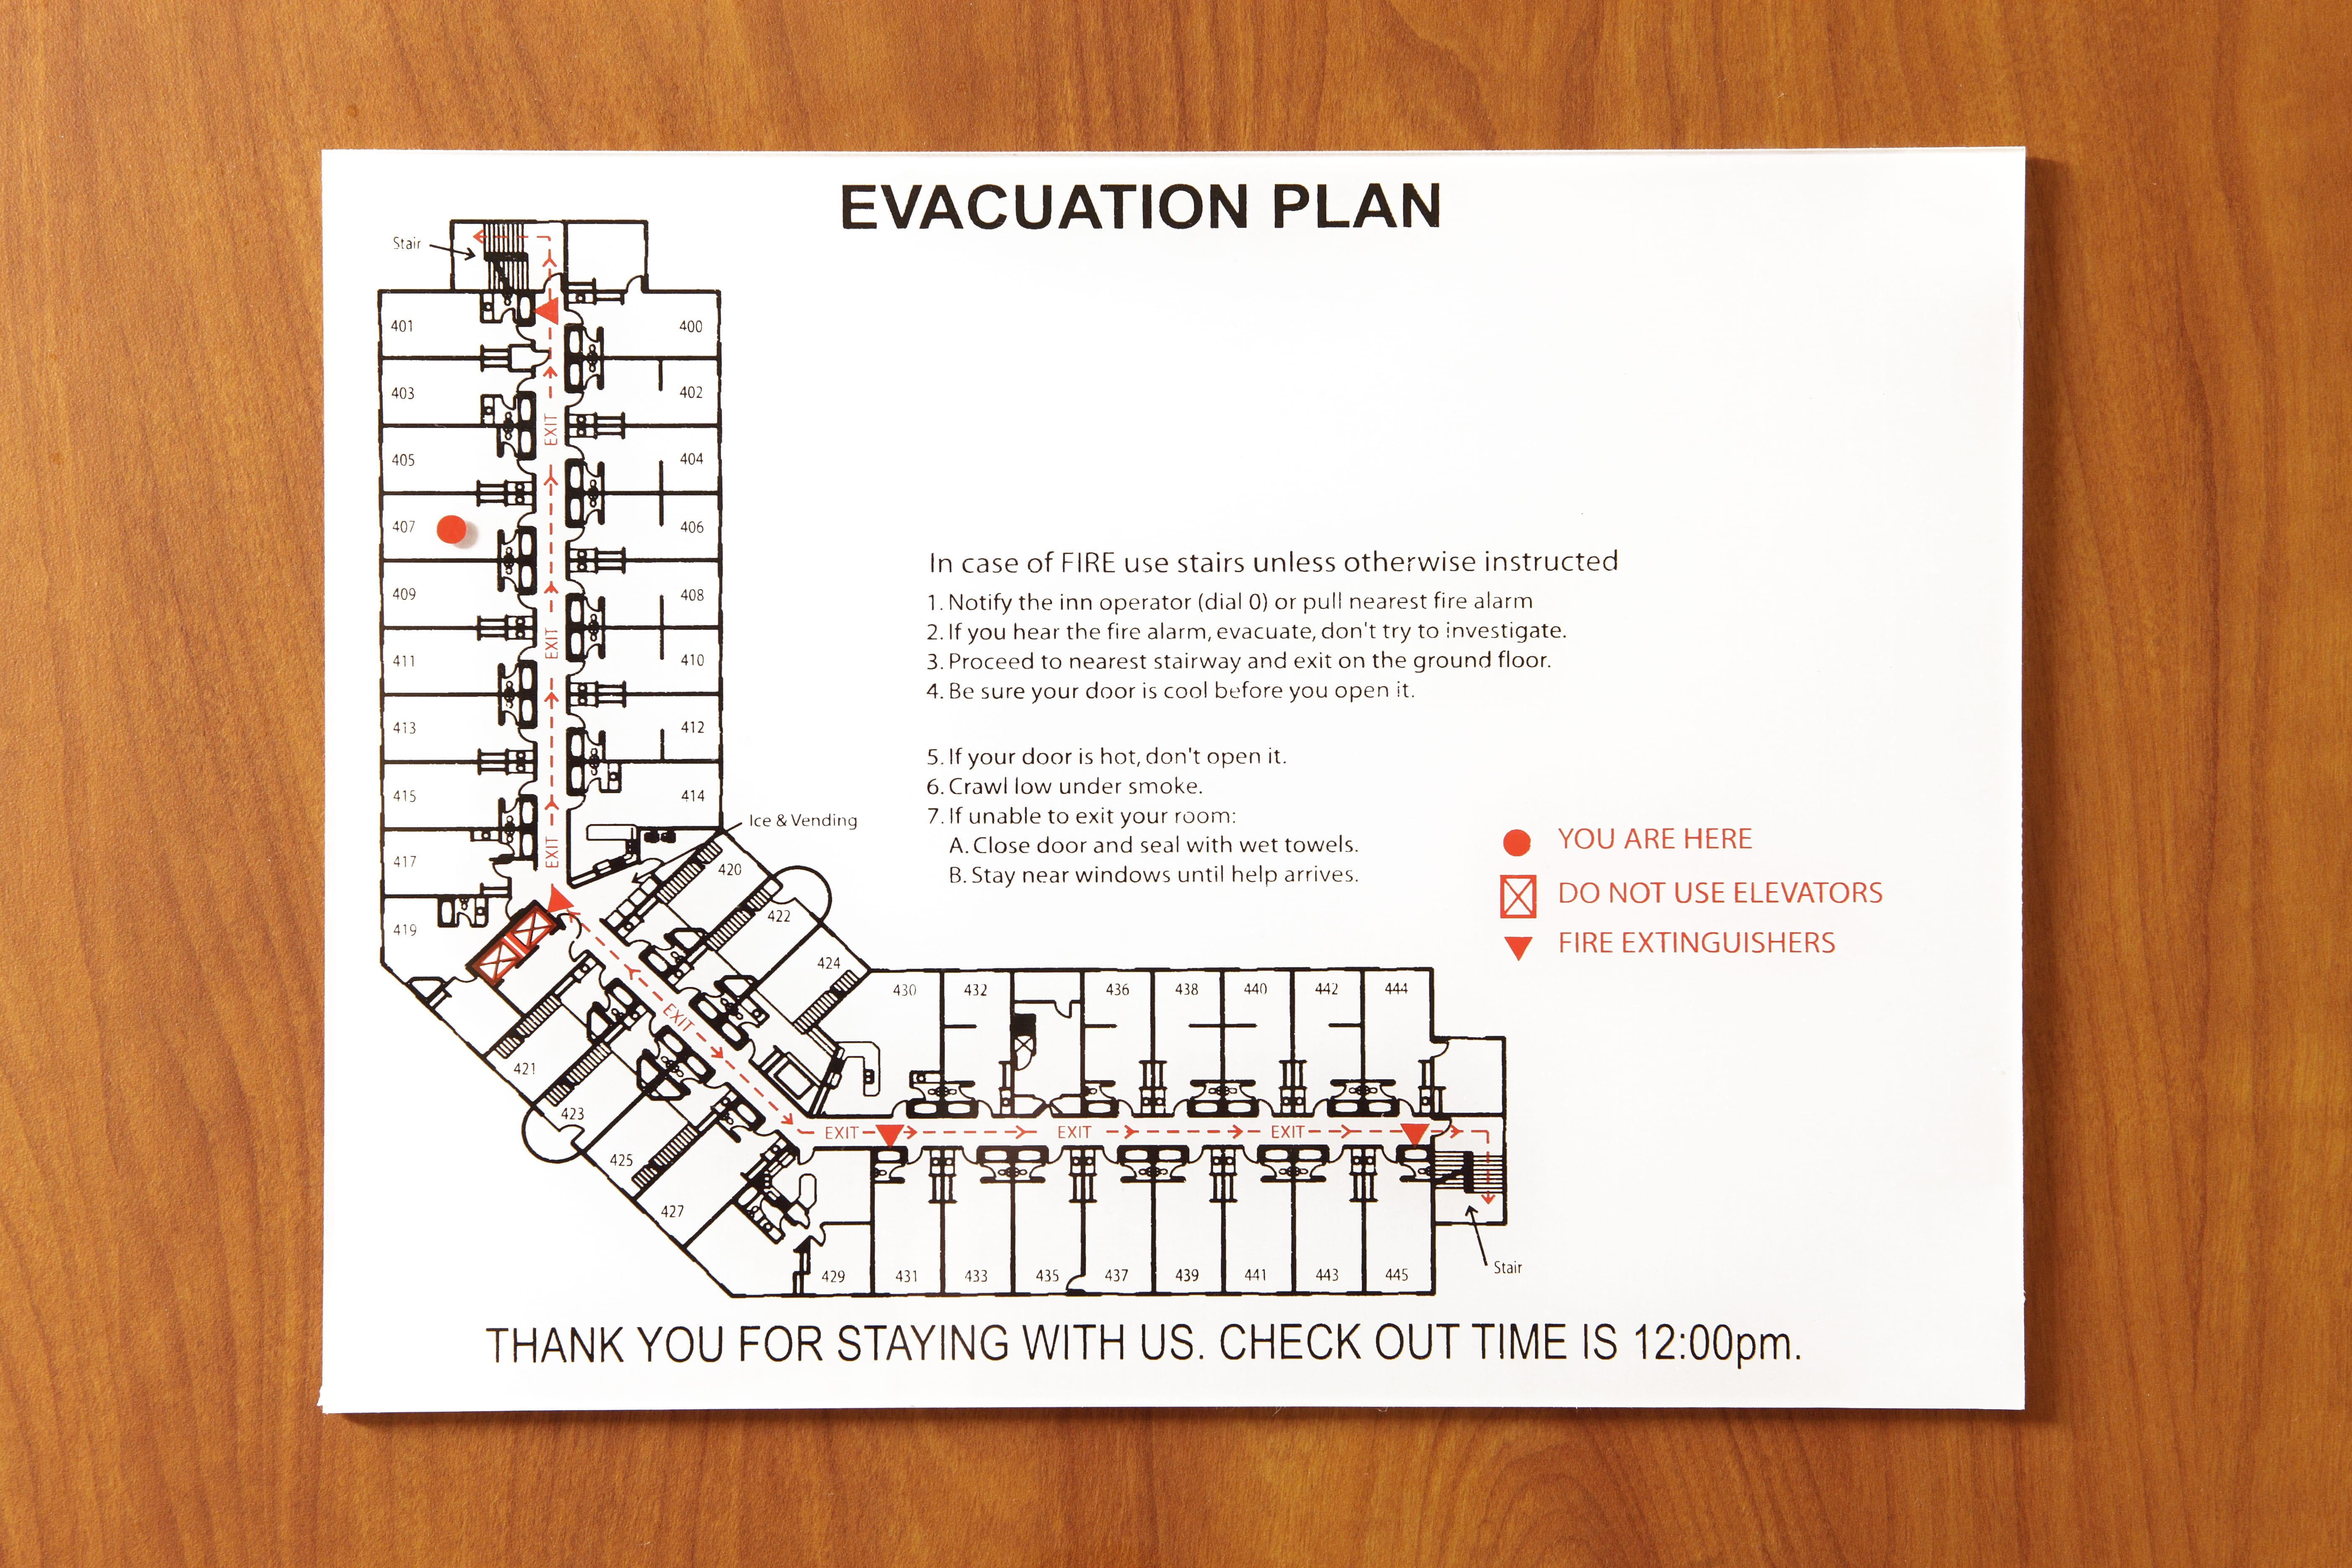 Disaster Preparedness - Why Hotels Need to be Ready